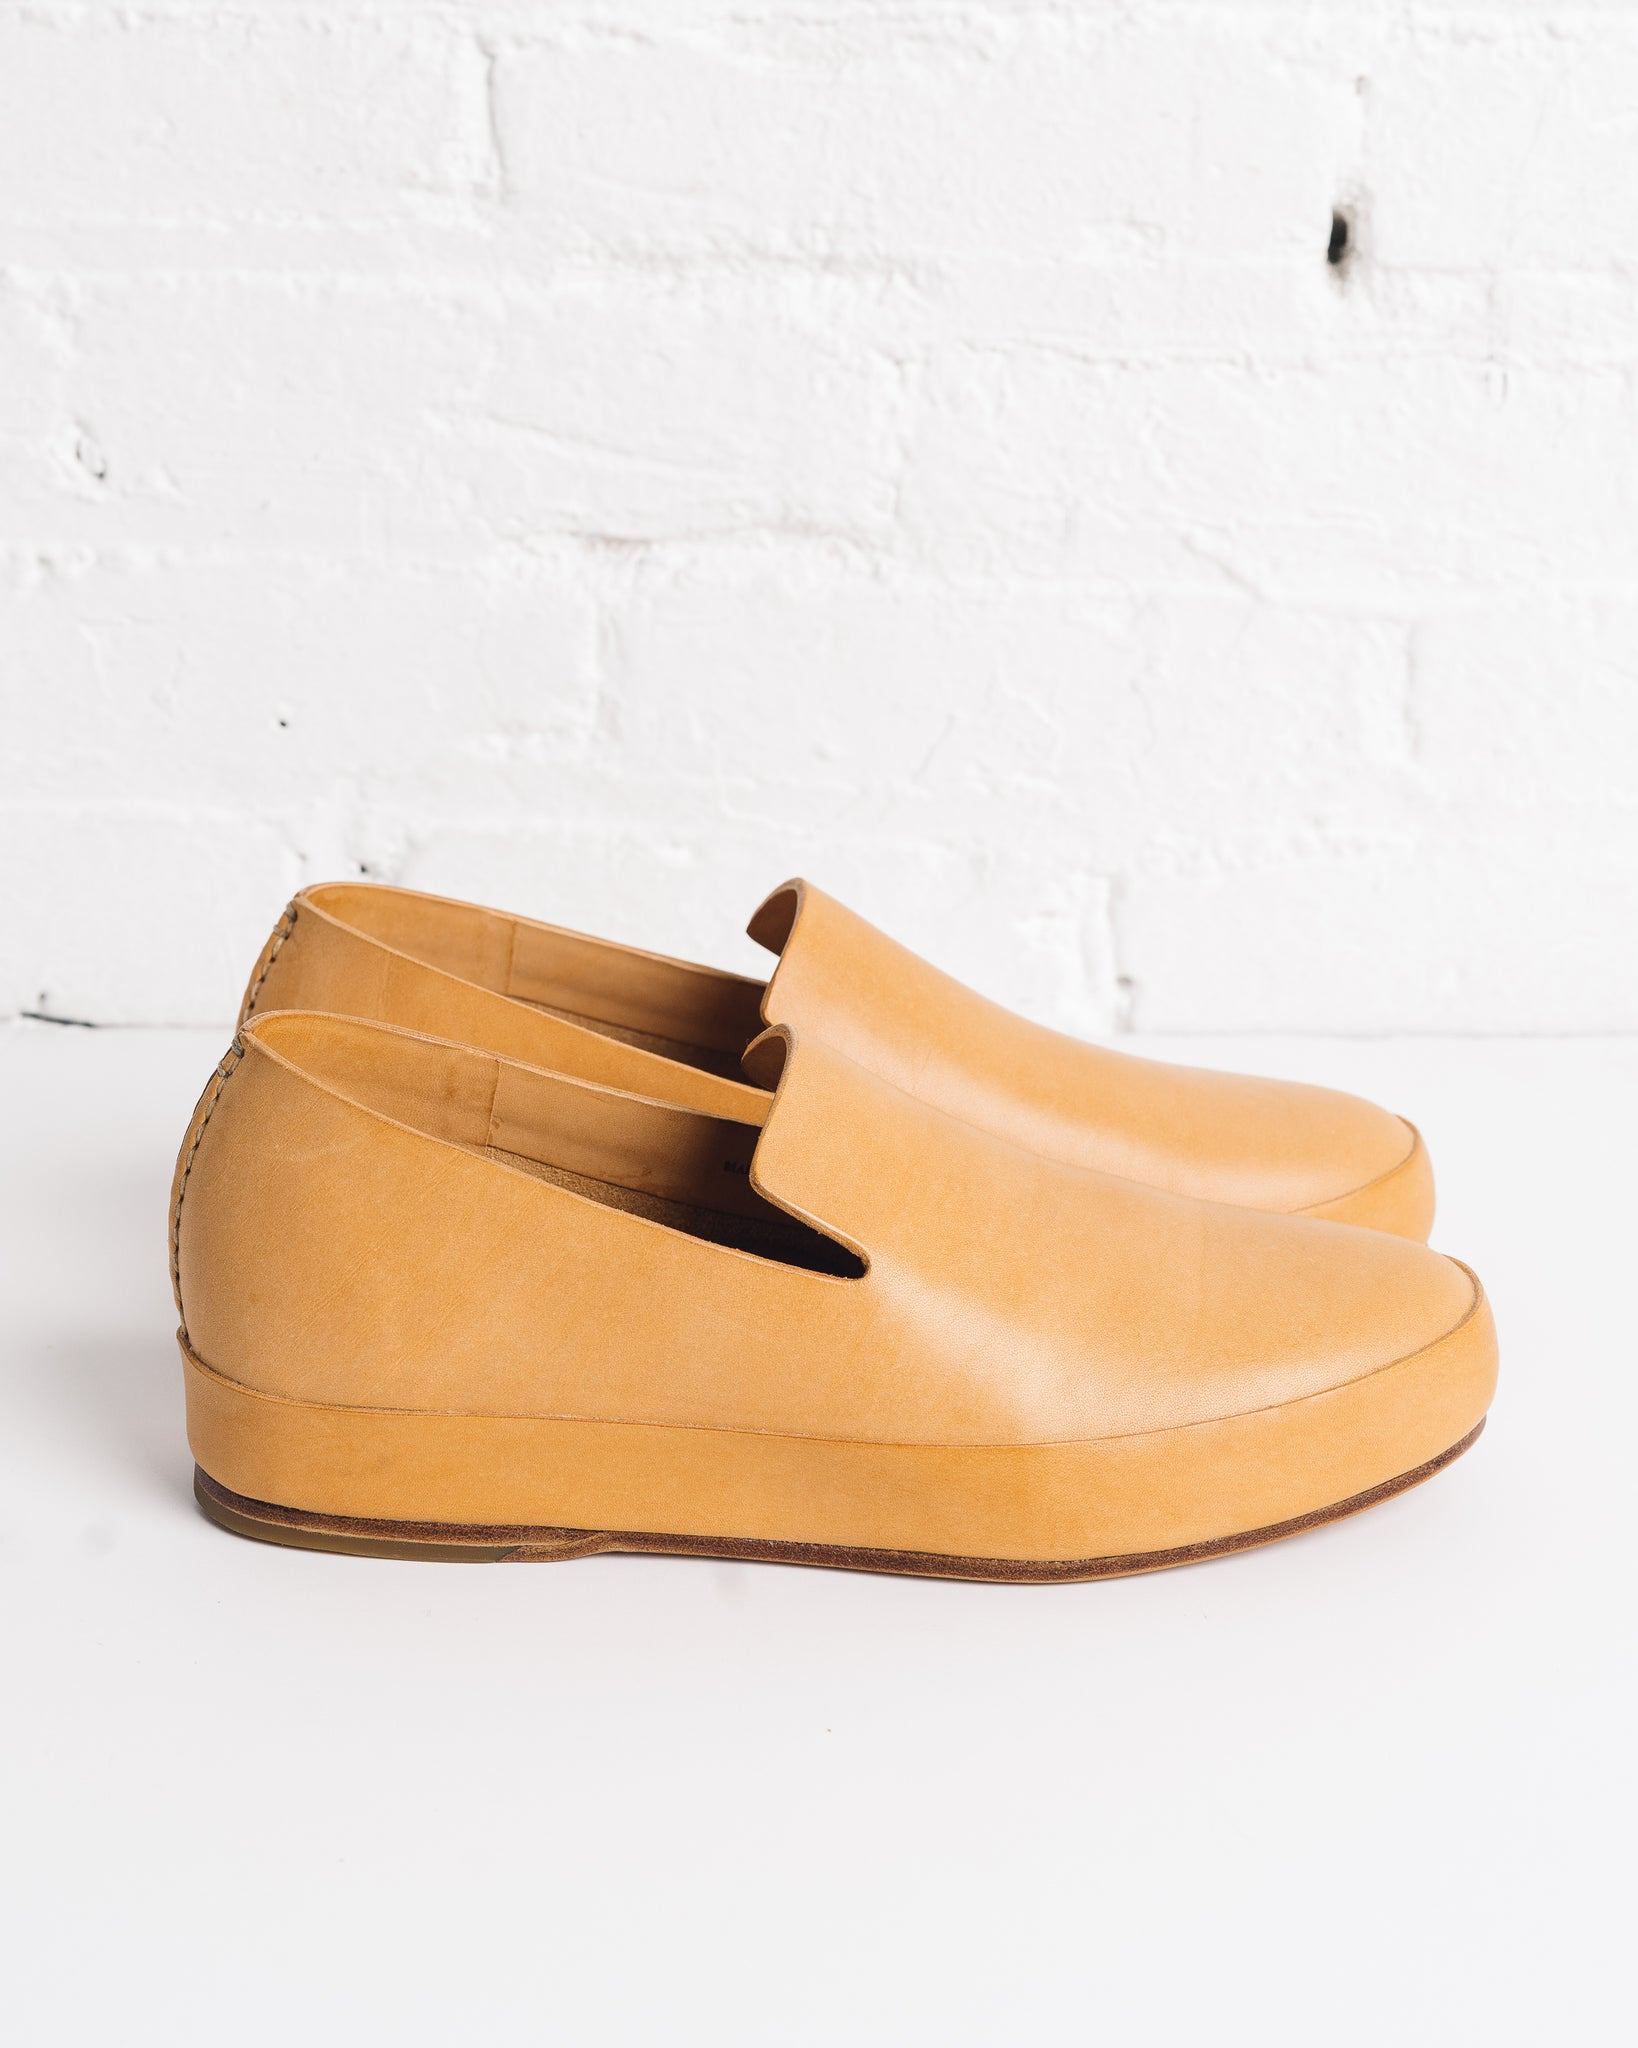 Feit Hand Sewn Slippers Natural, Mens